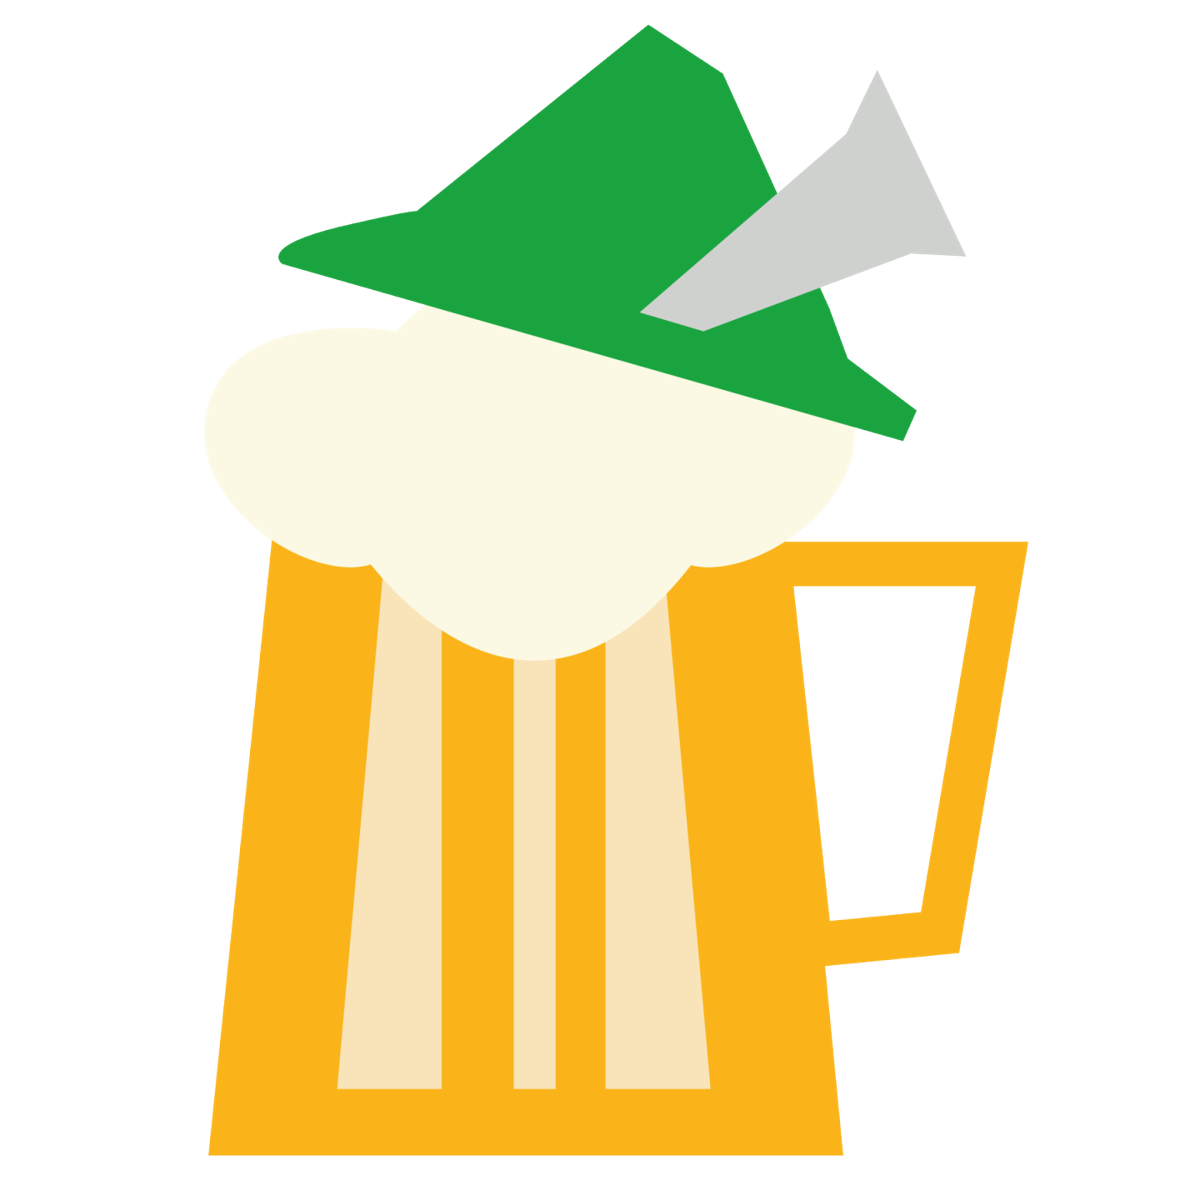 vector stock The changing face of Oktoberfest